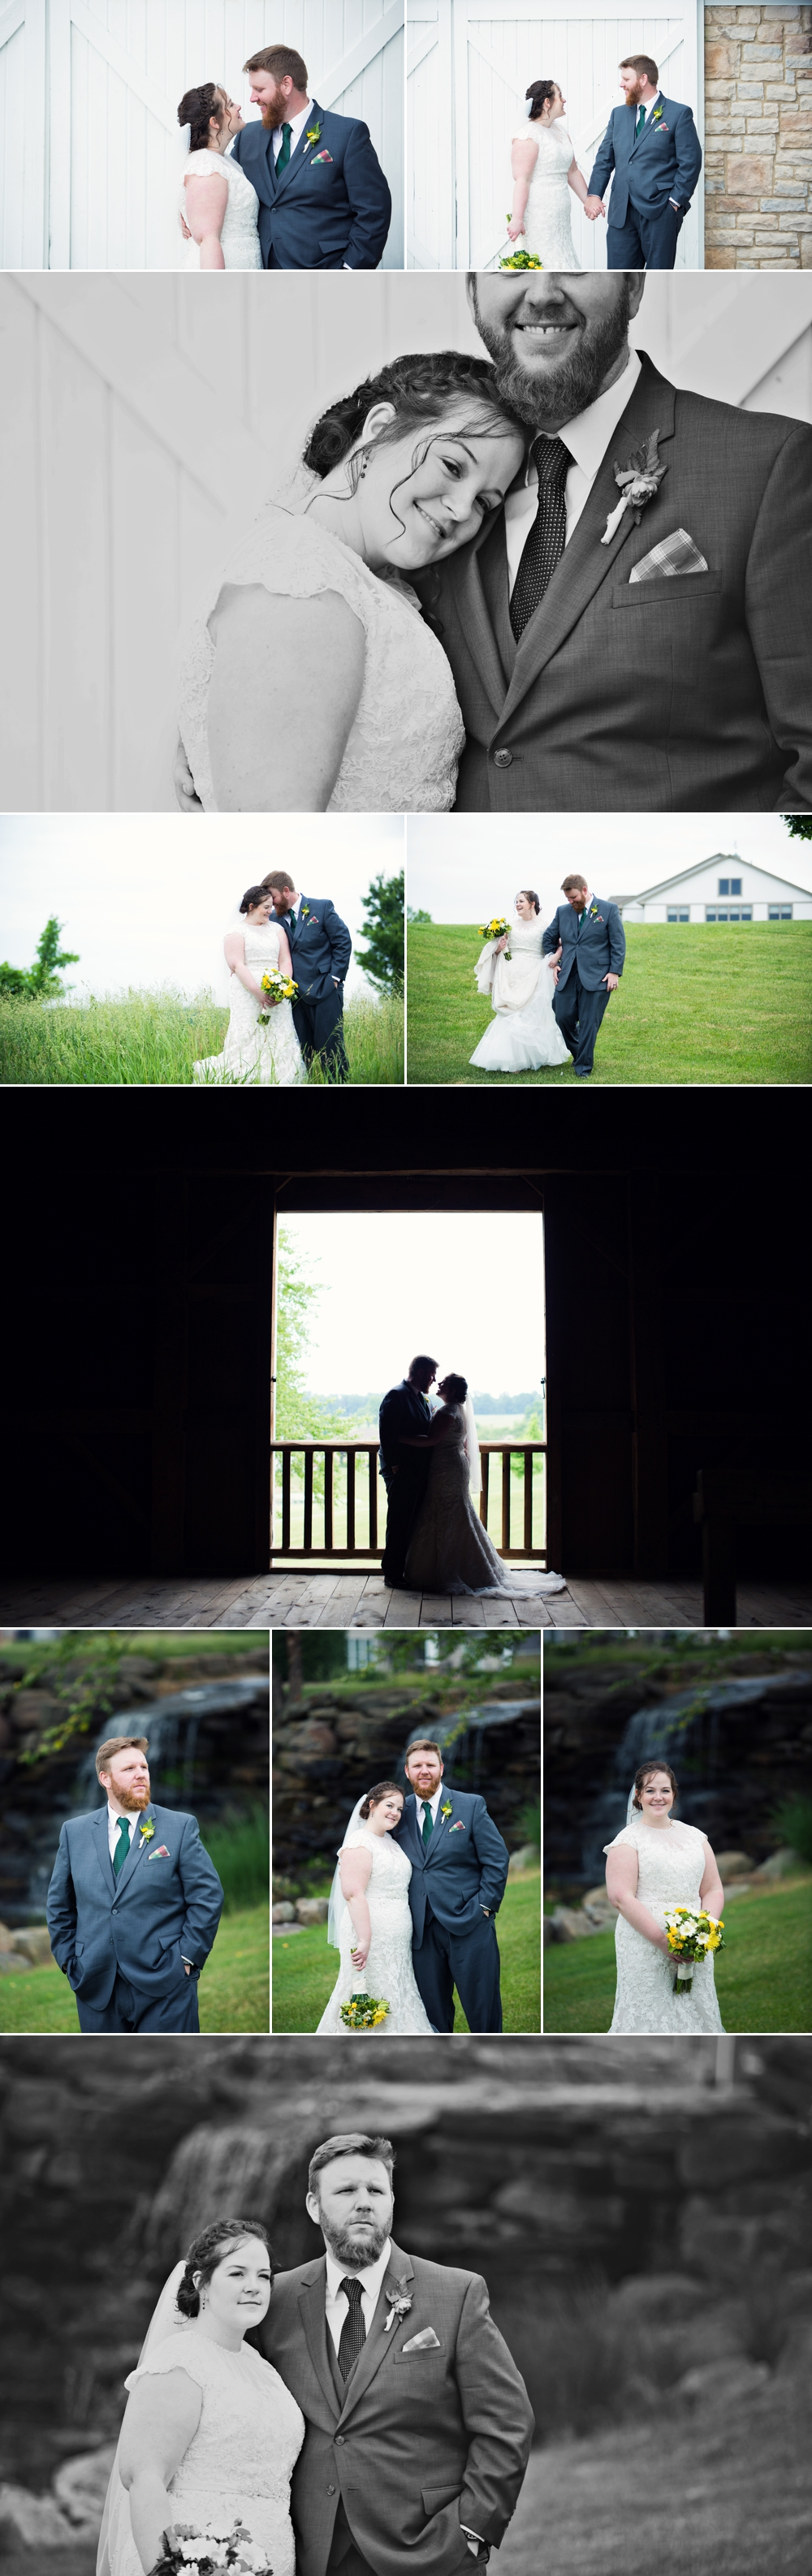 columbiana-wedding-photographer-7